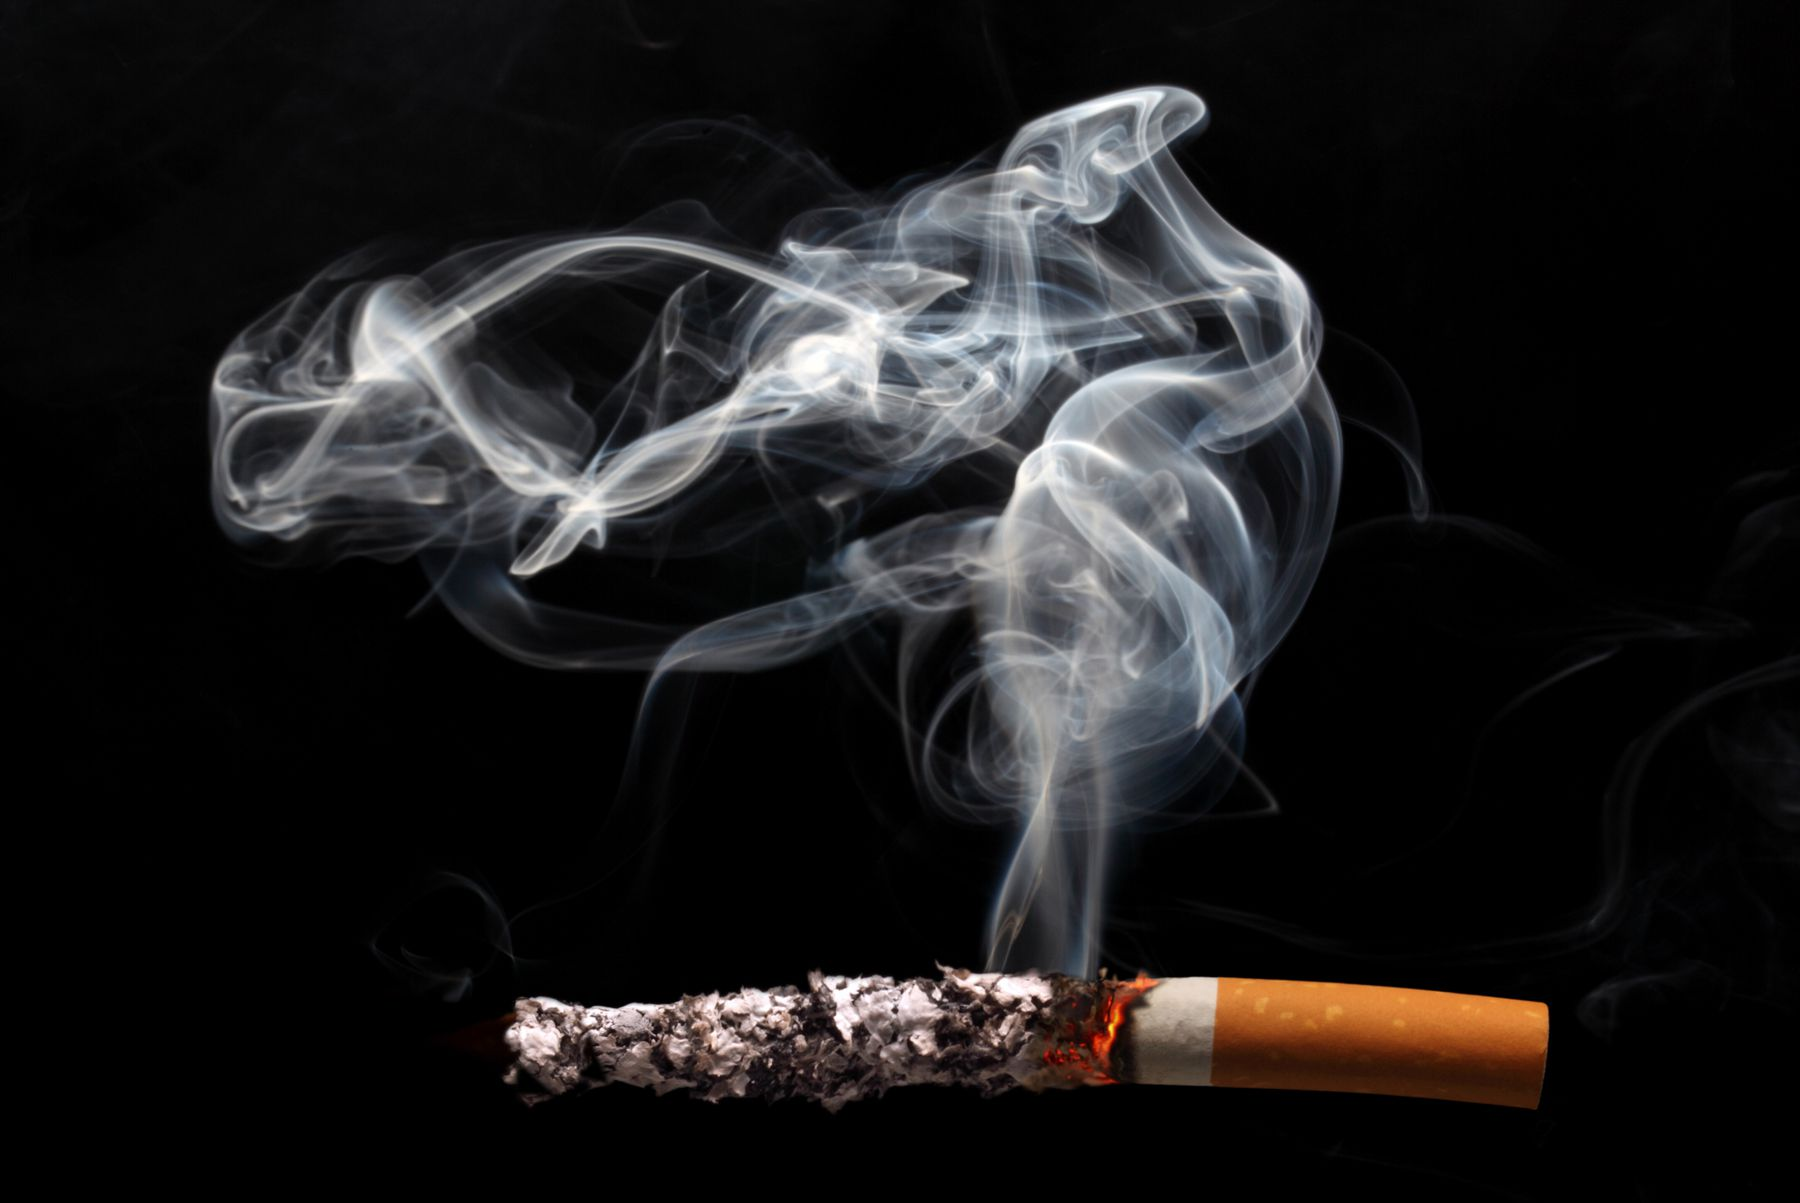 personal writing a view on smoking cigarettes Academic writing service online help 24/7 from $11 per page persuasive speech about not smoking persuasive speech about not smoking do you smoke do you enjoy cigarette smoke there is no need for smoking cigarettes.